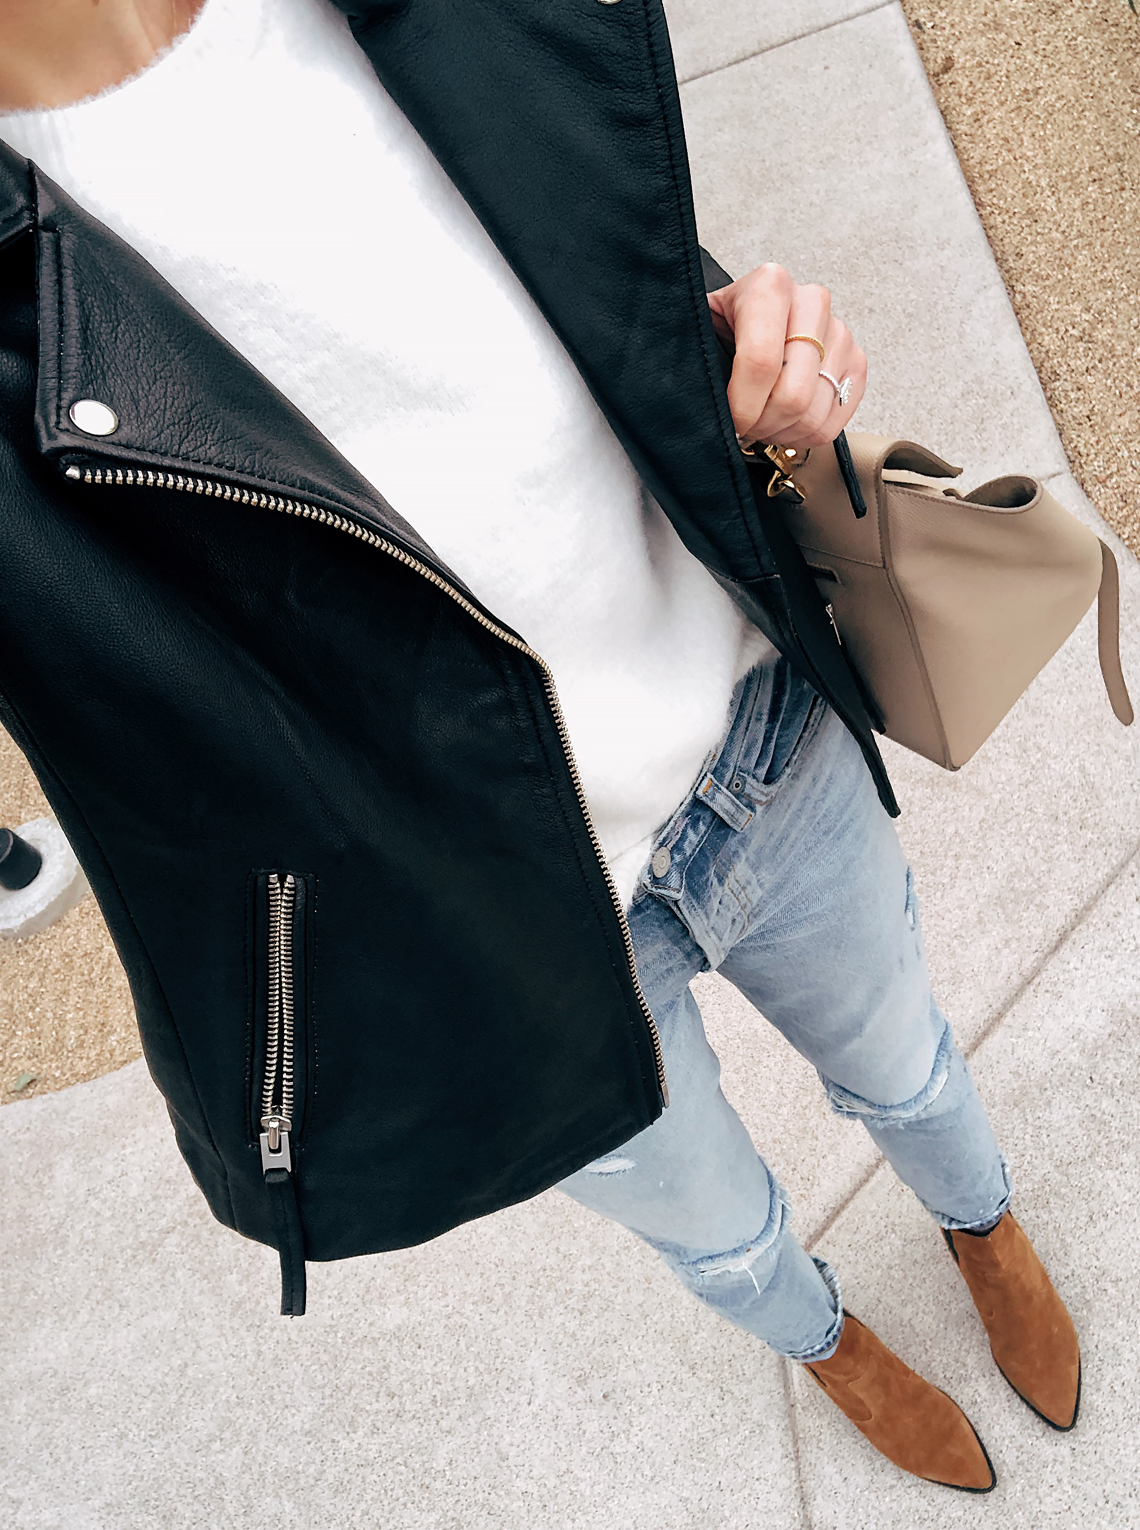 Fashion Jackson Wearing Topshop Black Leather Jacket White Top Boyfriend Jeans Brown Booties